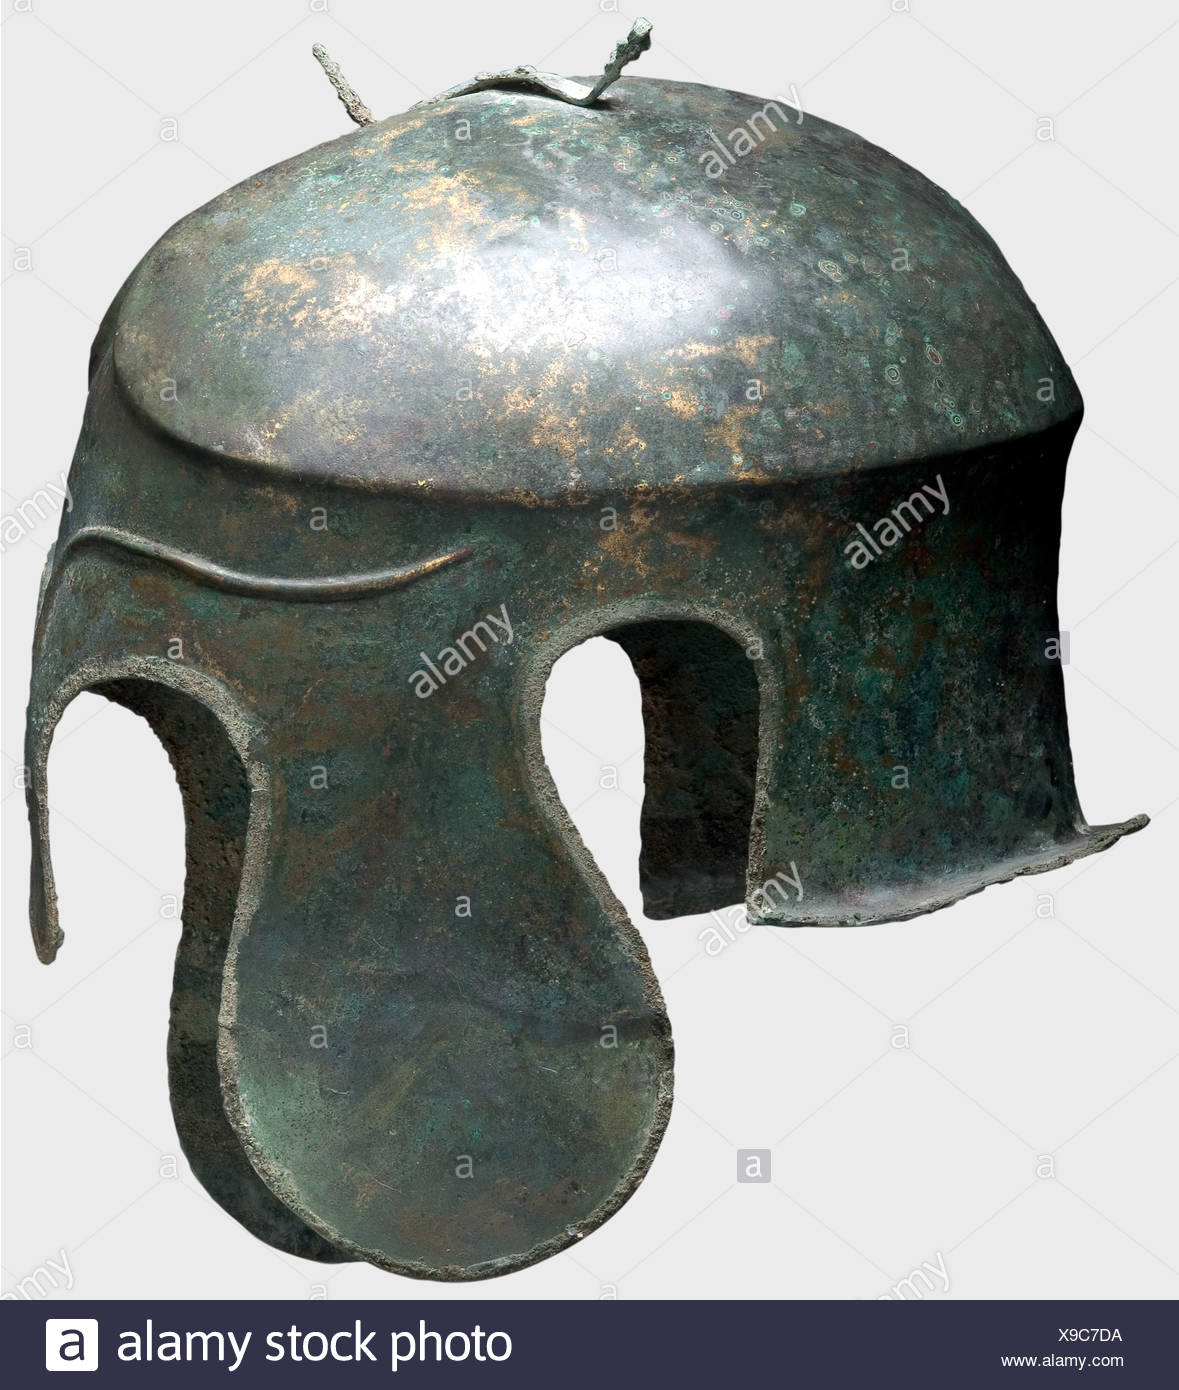 A Chalcidian helmet, 5th century B.C. Bronze. Narrow elongated skull with a carinated and crested crown, a fork-shaped attachment for the helmet plume, large lobed cheek pieces and ear cutouts, and a short flaring neck guard. The forehead with long decorative eyebrows in relief. The rim of the helmet has preserved some of the soldered edge moulding (solder in place all around). The left cheek piece is bent outward with severe nailing perforation, presumably from the votive offering of the helmet in a sanctuary. Height 19.5 cm. Weight 638 g. The metal is well-pr, Additional-Rights-Clearences-NA - Stock Image